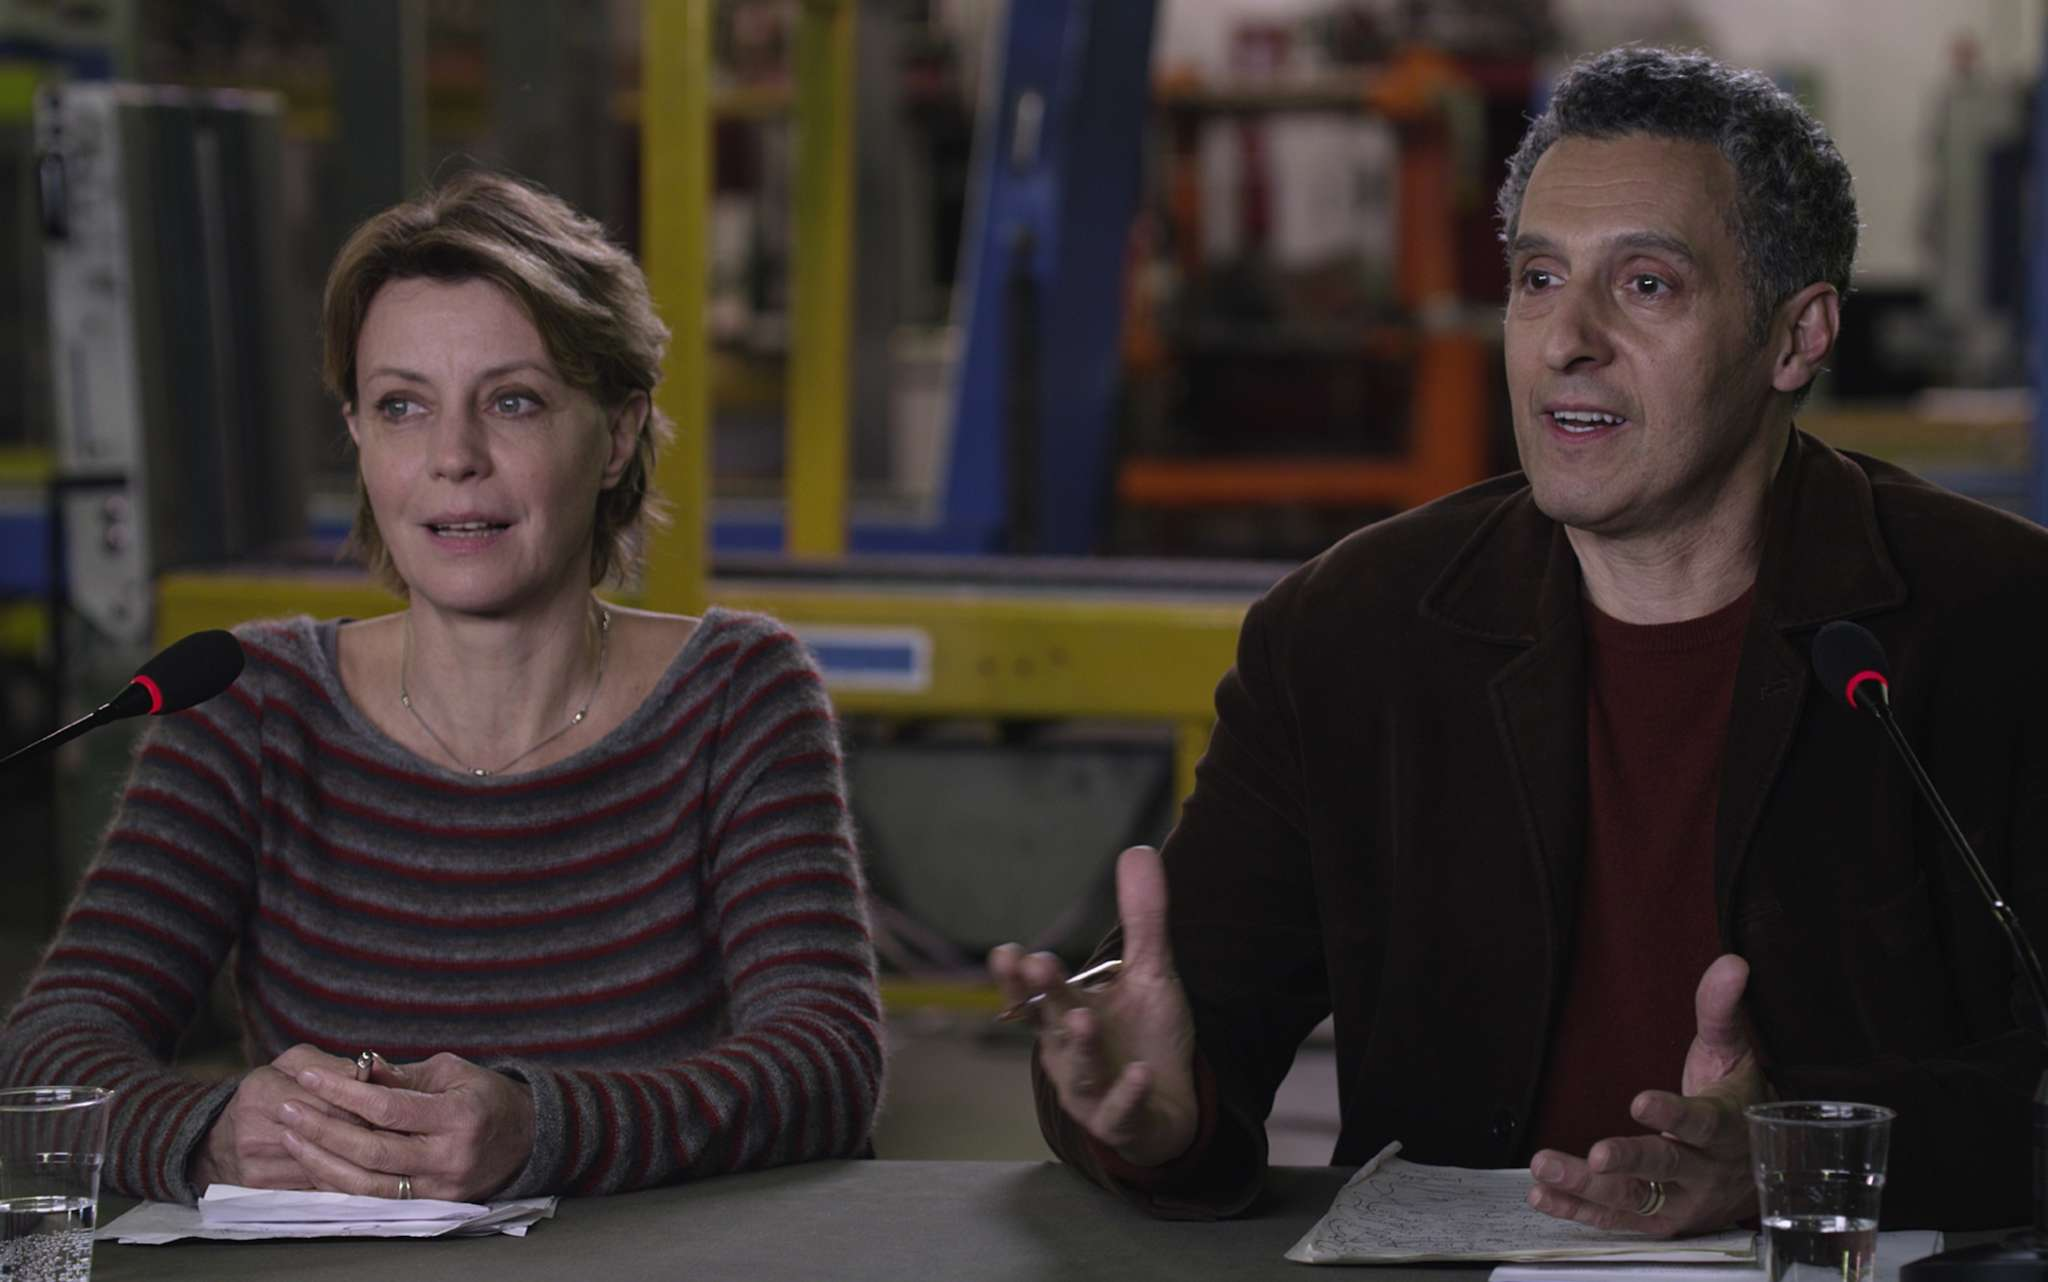 """""""Mia Madre"""" stars Margherita Buy as a director whose life is unraveling. John Turturro adds comic relief as a loutish New York actor."""